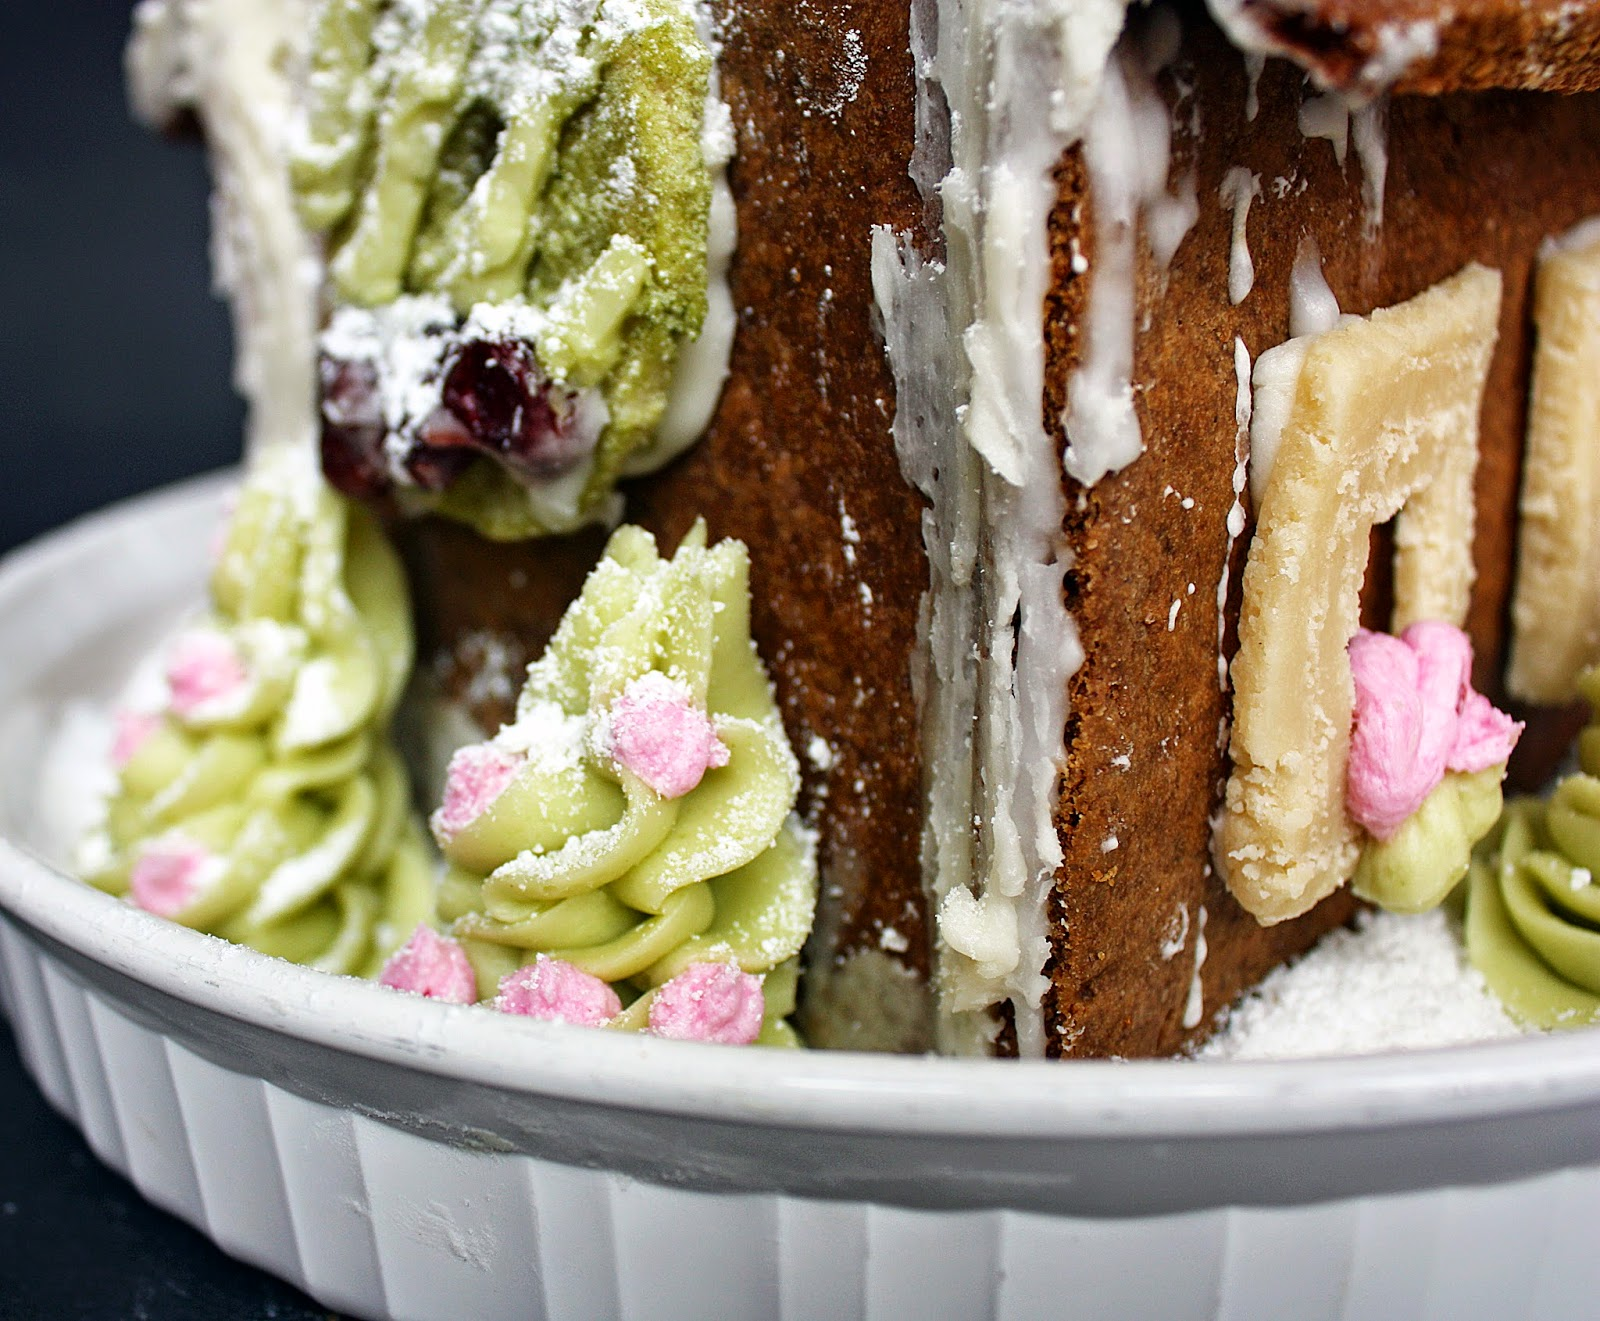 homemade vegan gingerbread house